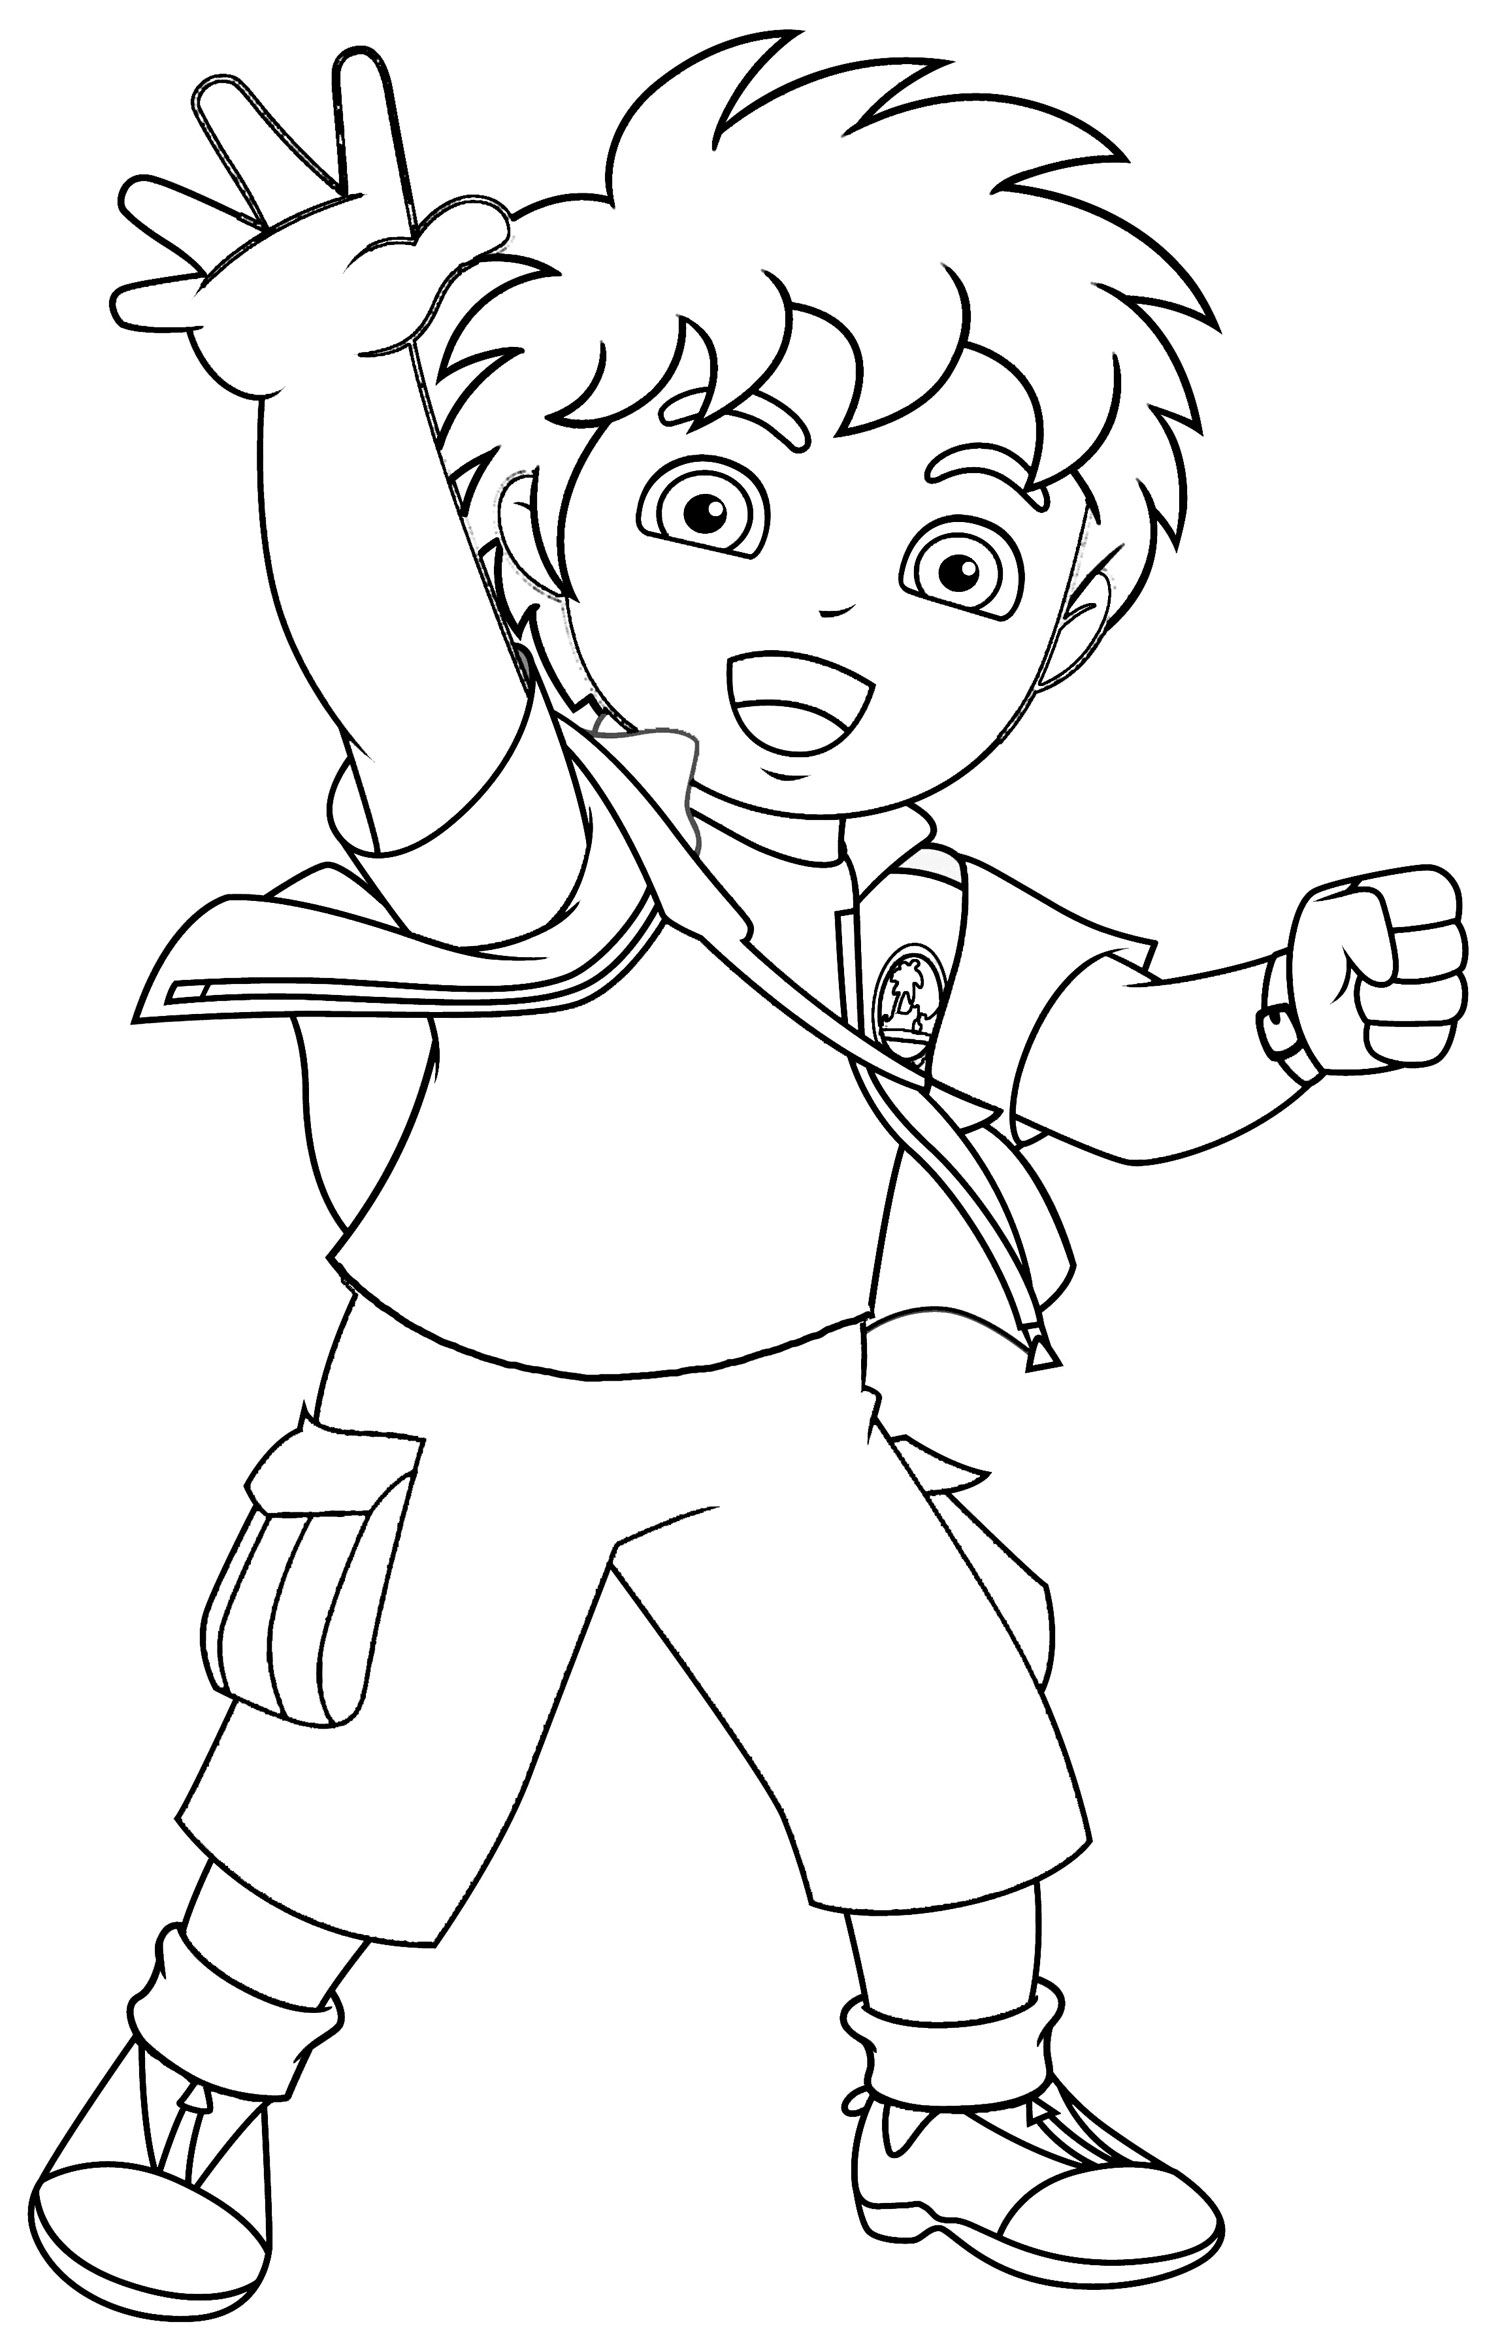 Pin By Coloring Fun On Dora The Explorer Pinterest